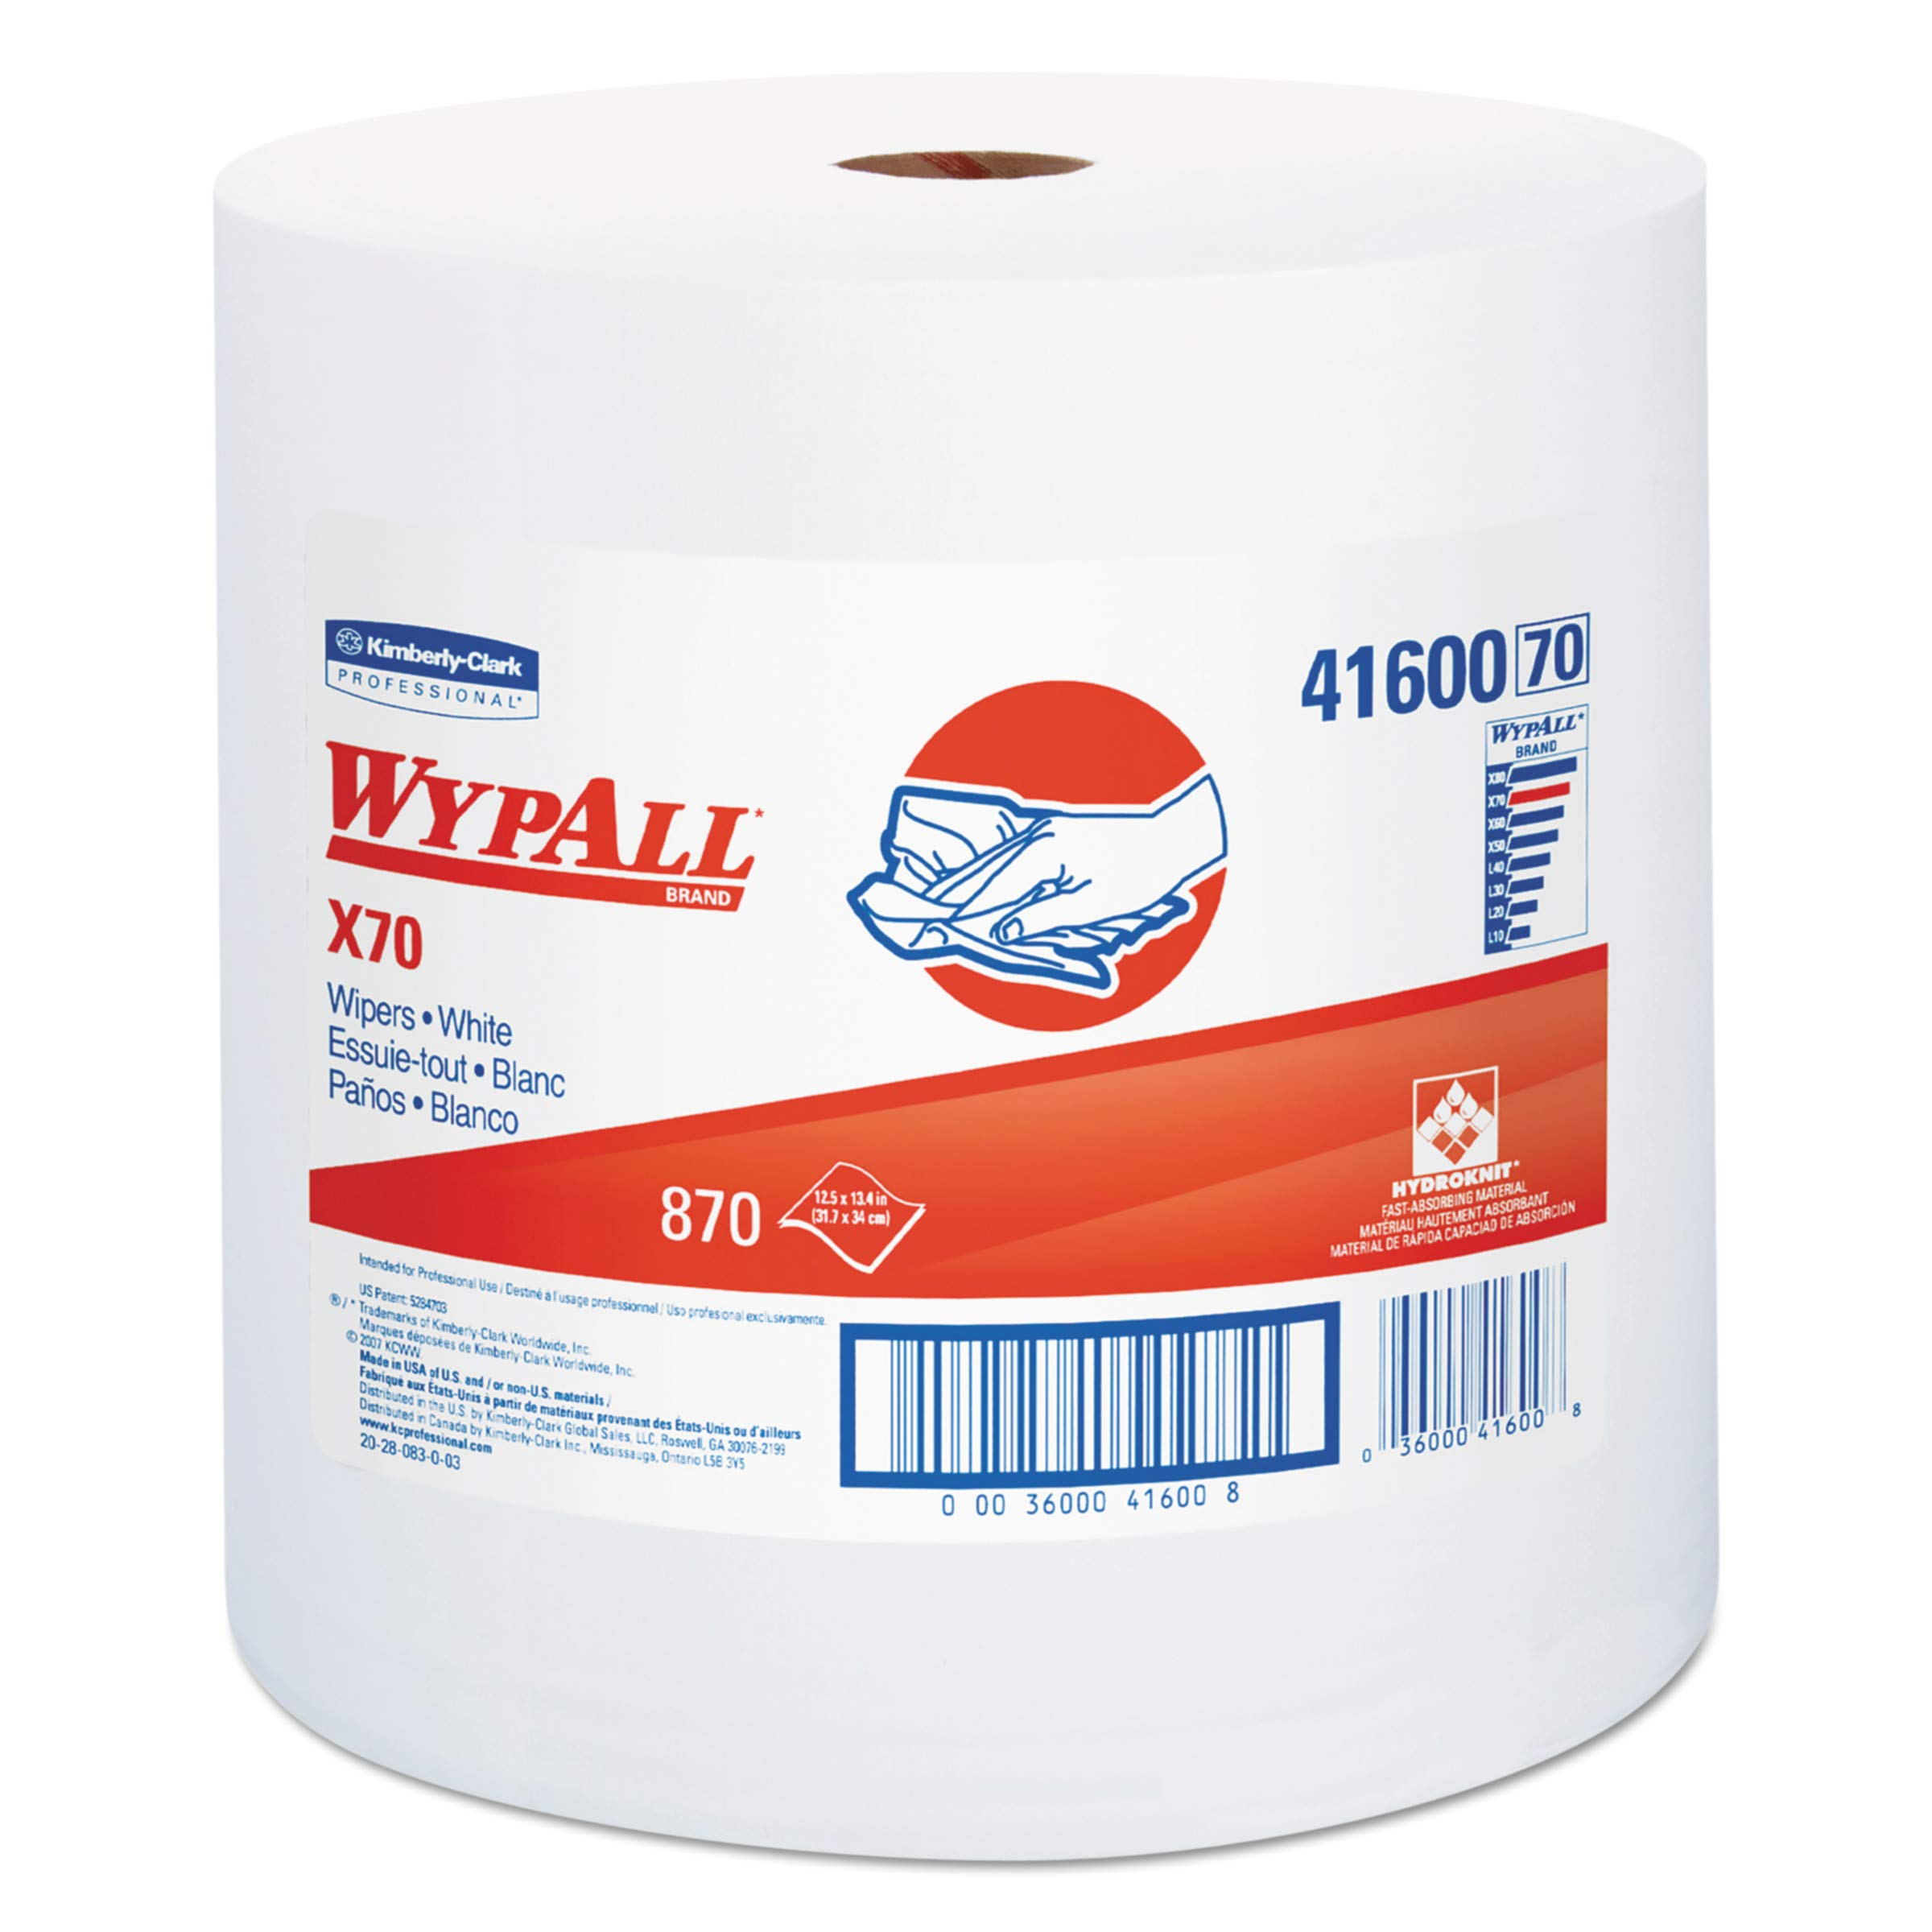 WypAll 41600 X70 Cloths, Jumbo Roll, Perf., 12 1/2 x 13 2/5, White, 870 Towels/Roll